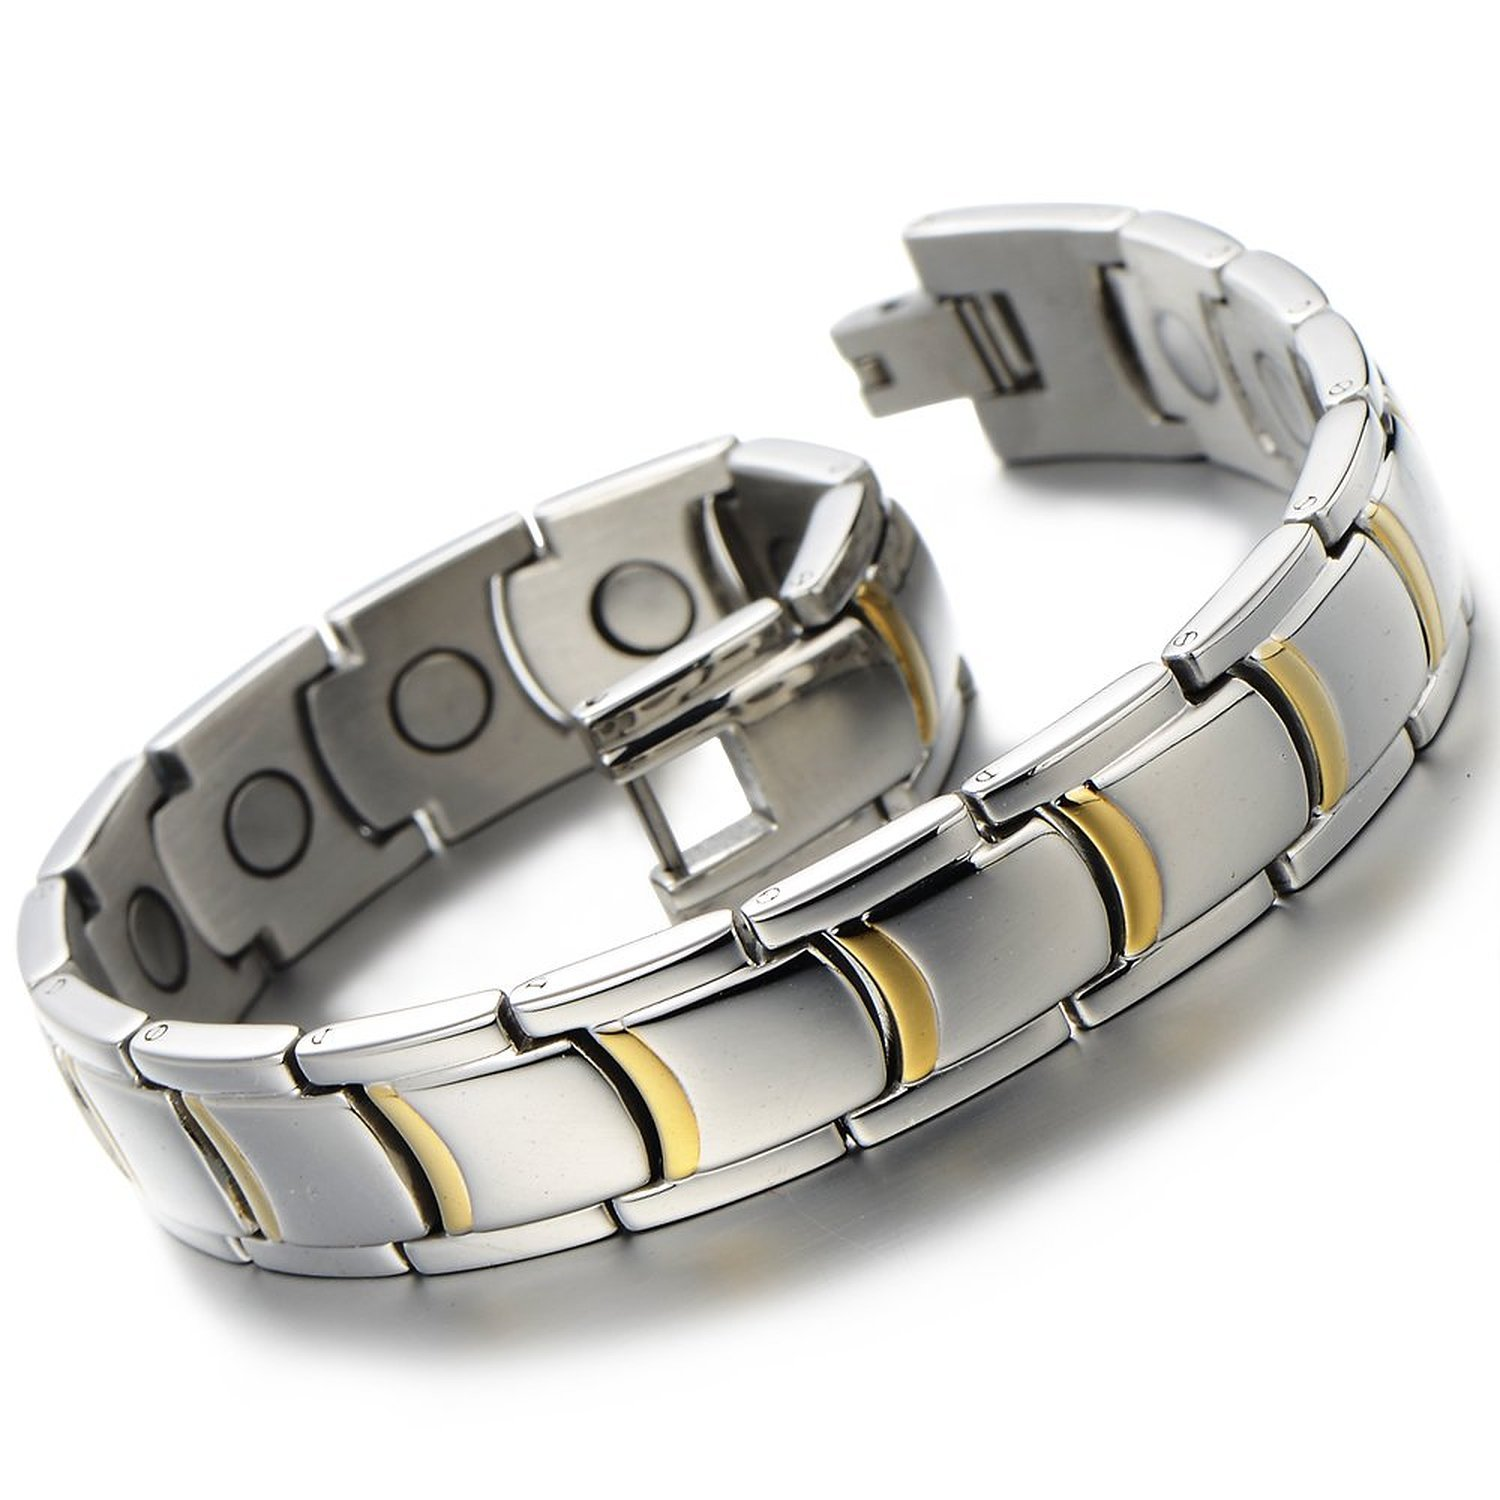 Stylish Mens Magnetic Link Bracelet Stainless Steel with Magnets Silver Gold Two-tone COOLSTEELANDBEYOND MB-153-CA